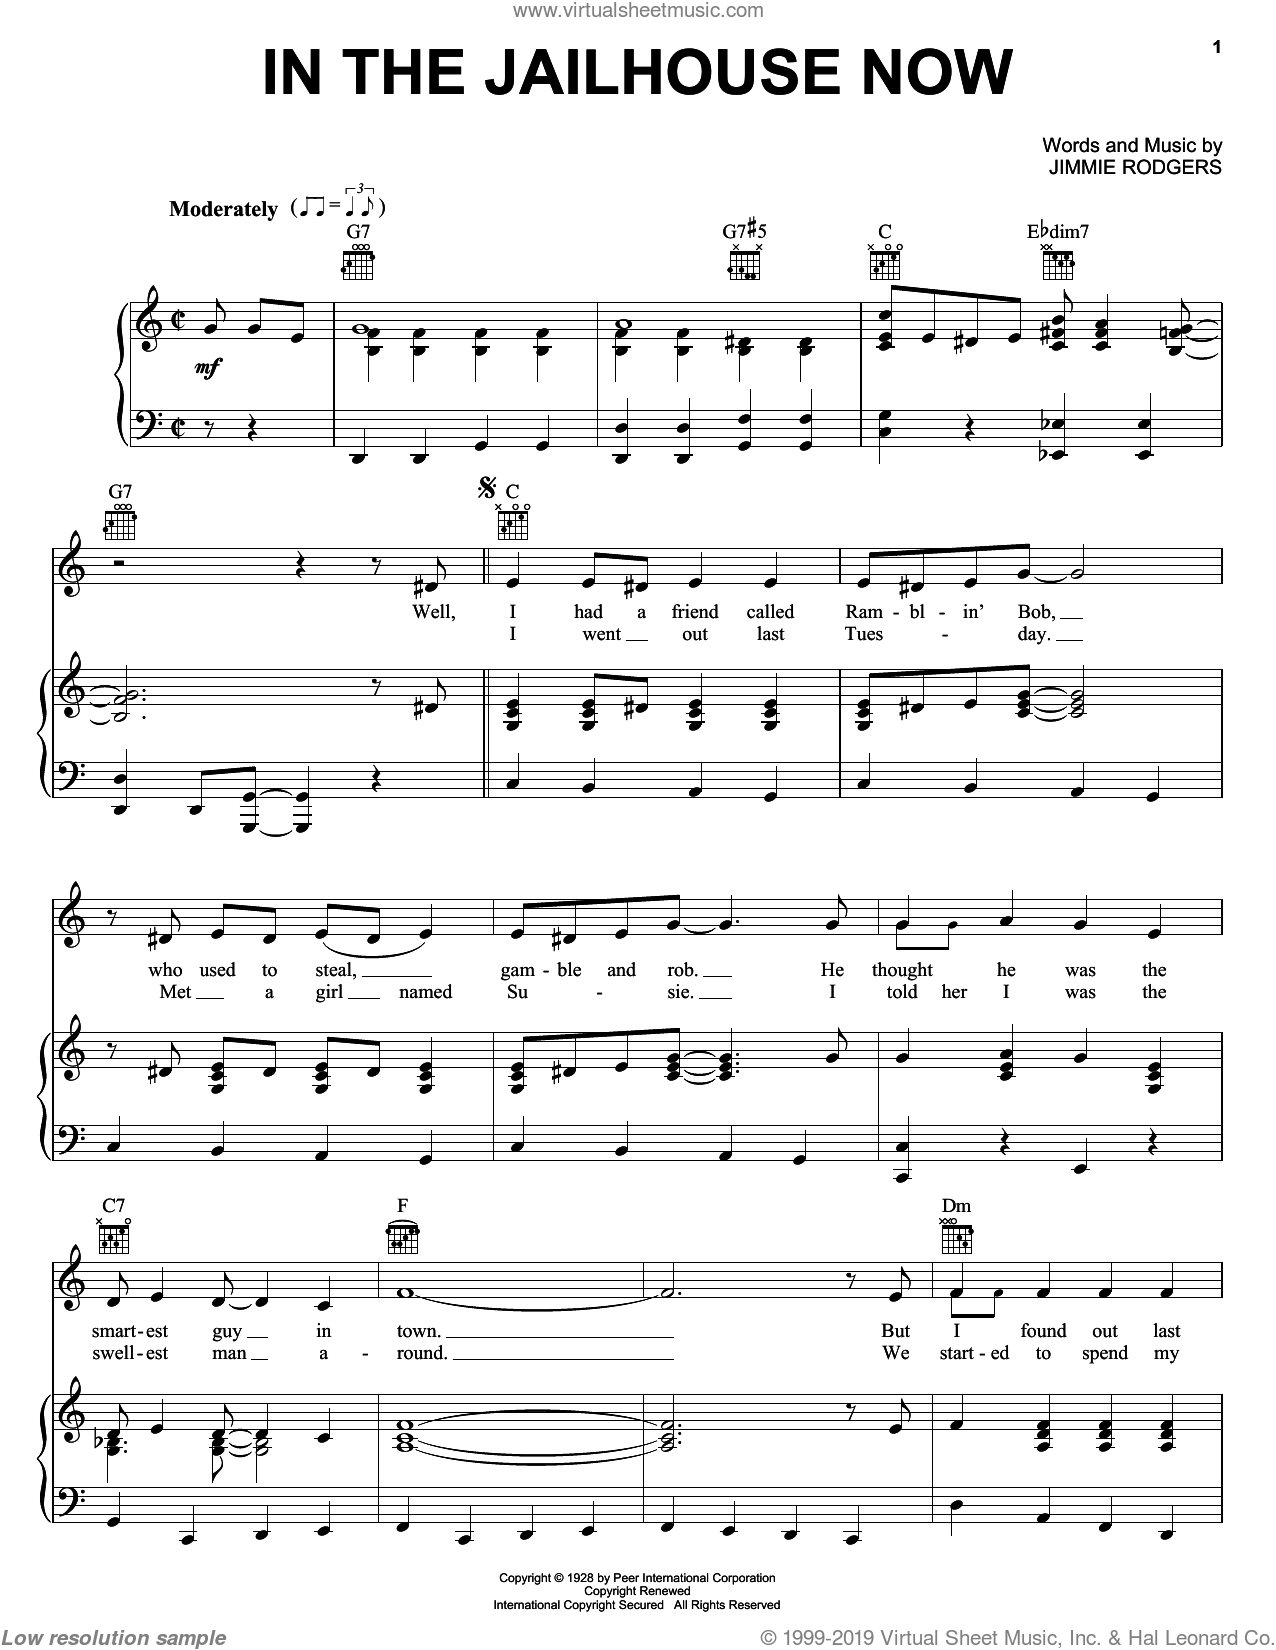 In The Jailhouse Now sheet music for voice, piano or guitar by Jimmie Rodgers, intermediate skill level